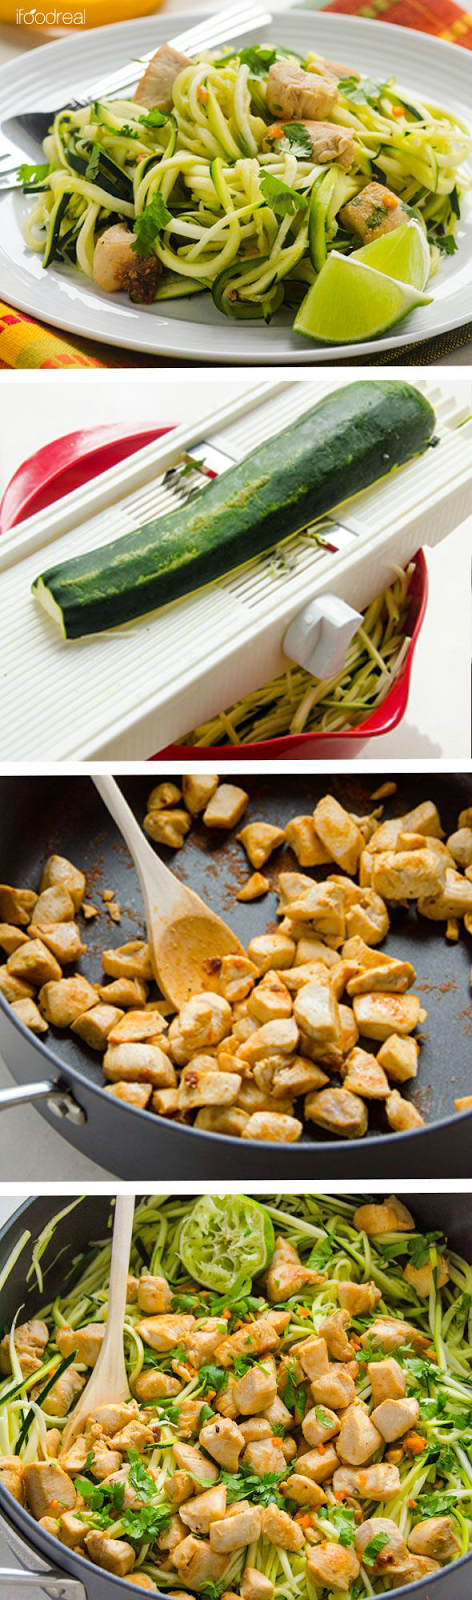 3_zucchini_noodles_with_cilantro_lime_chicken